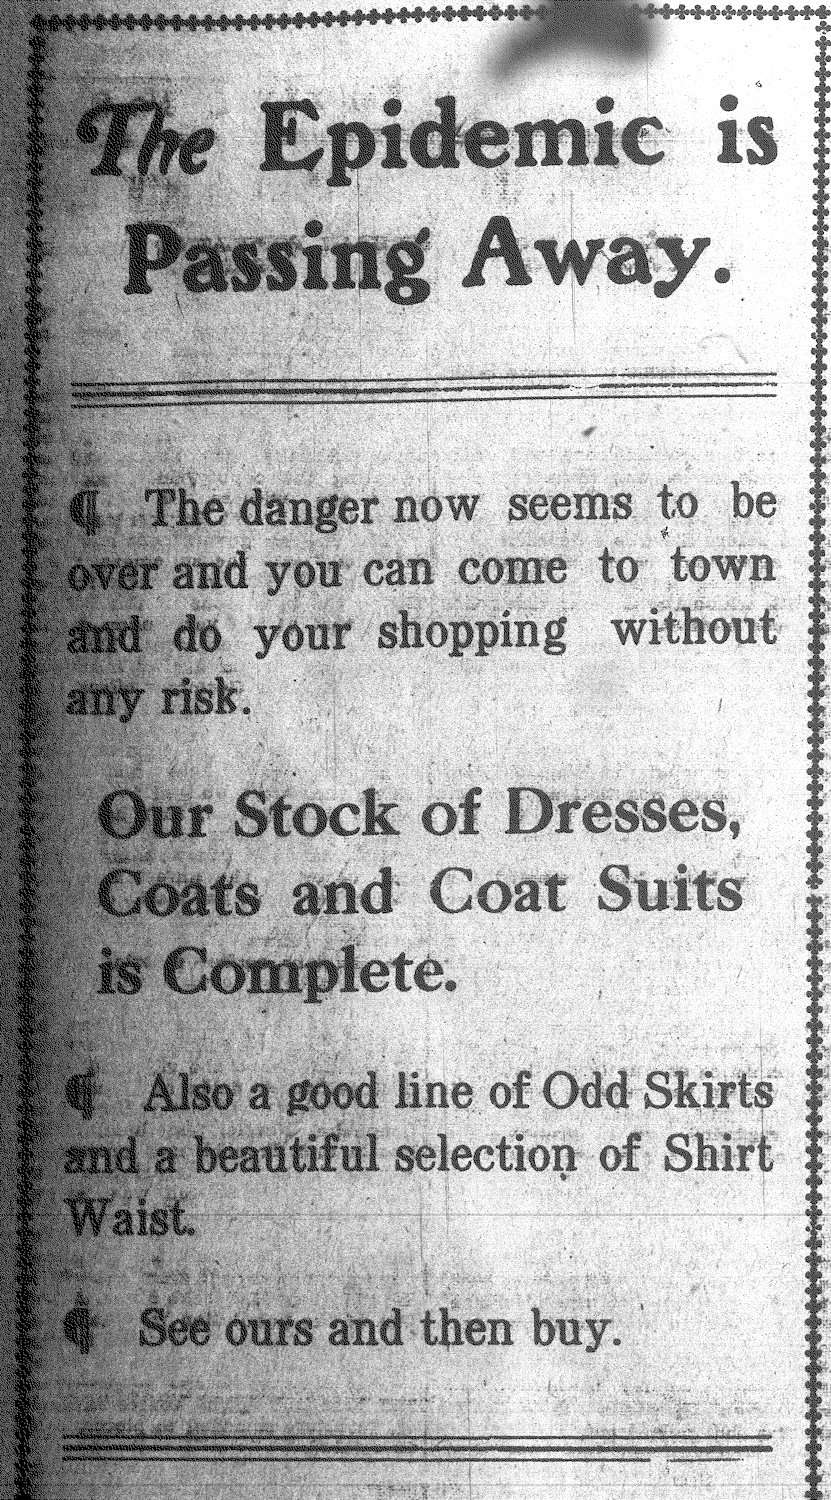 This ad assured customers of a clothing store that the danger from the Spanish flu epidemic was over and shoppers could stop by the store risk free.